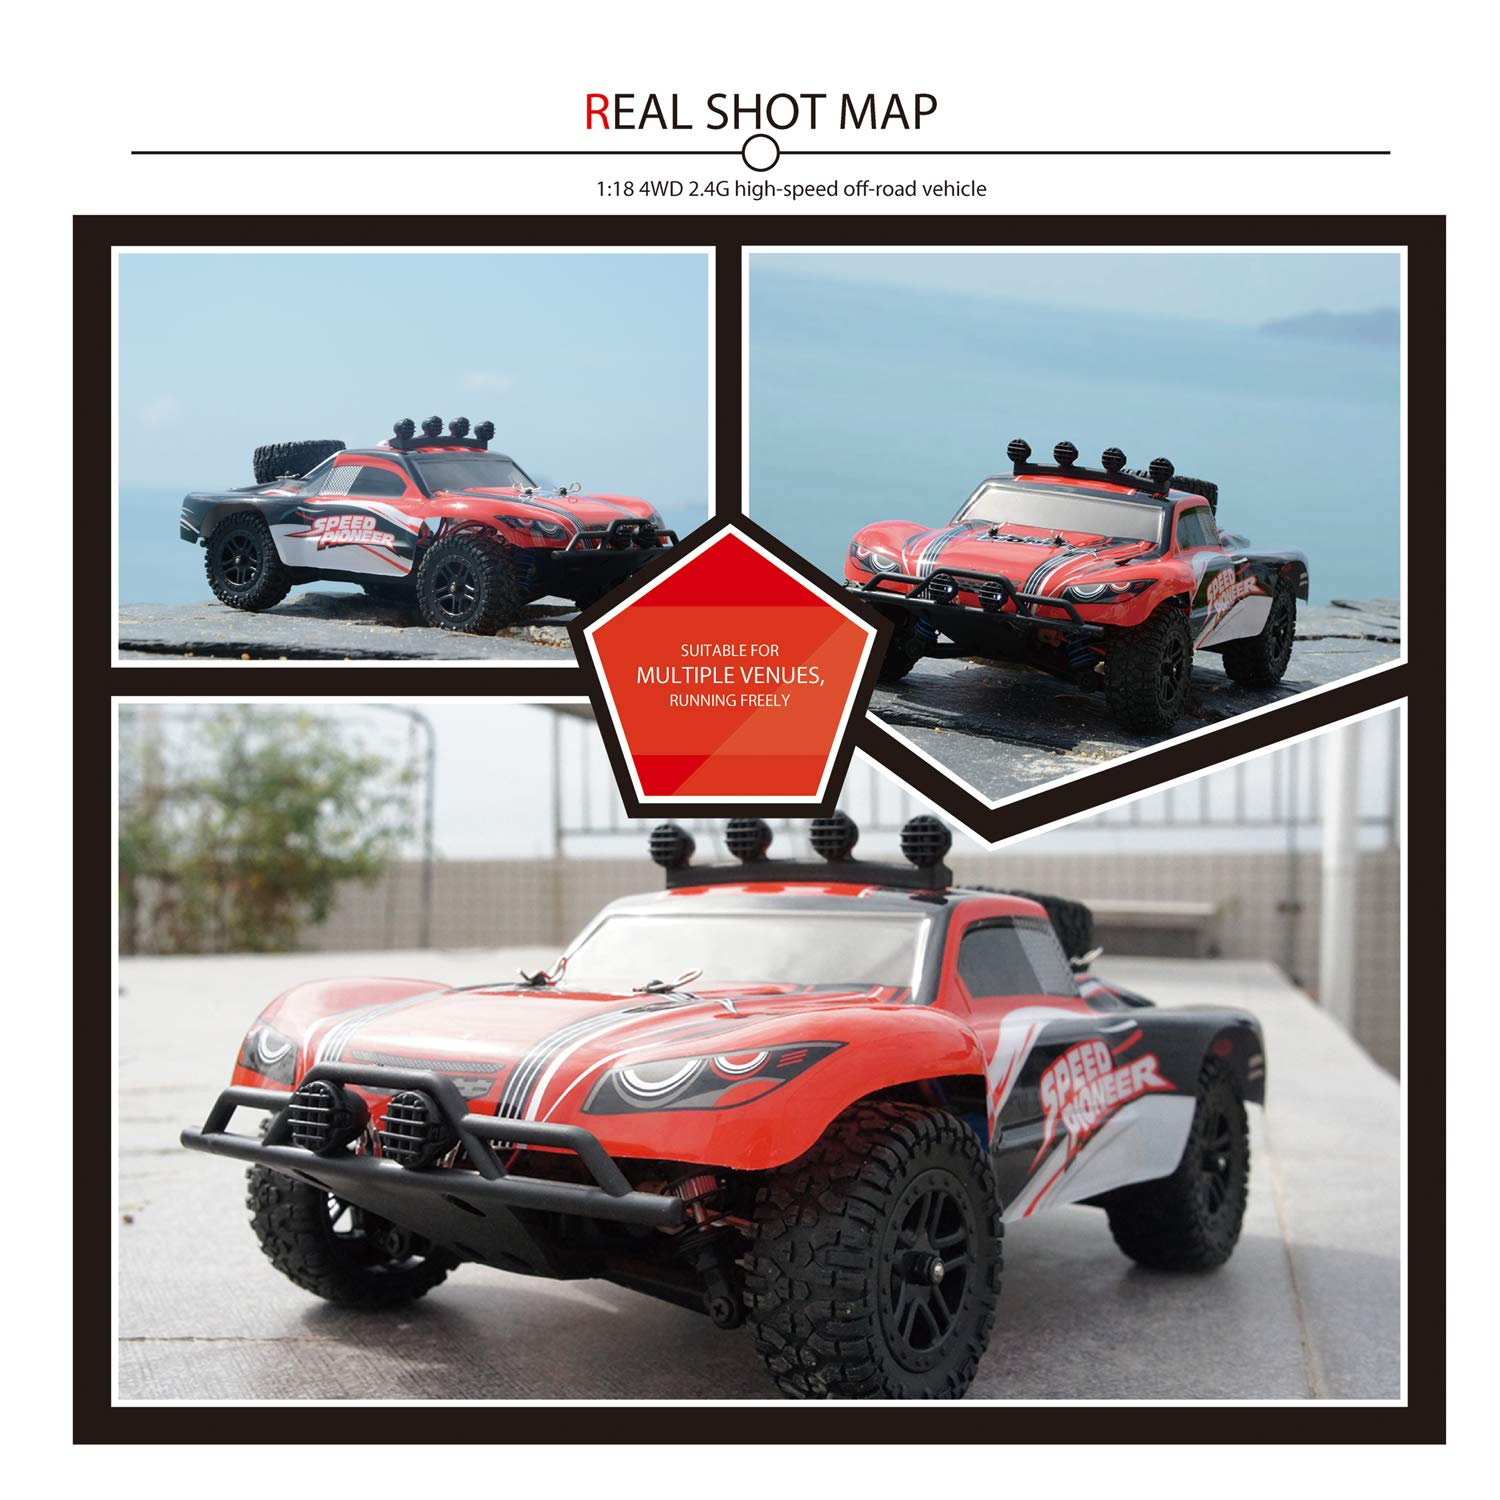 EXERCISE N PLAY RC Car, Remote Control Car, Terrain RC Cars, Electric Remote Control Off Road Monster Truck, 1:18 Scale 2.4Ghz Radio 4WD Fast 30+ MPH RC Car, with LED Ligh, 2 Rechargeable Batteries by EXERCISE N PLAY (Image #5)